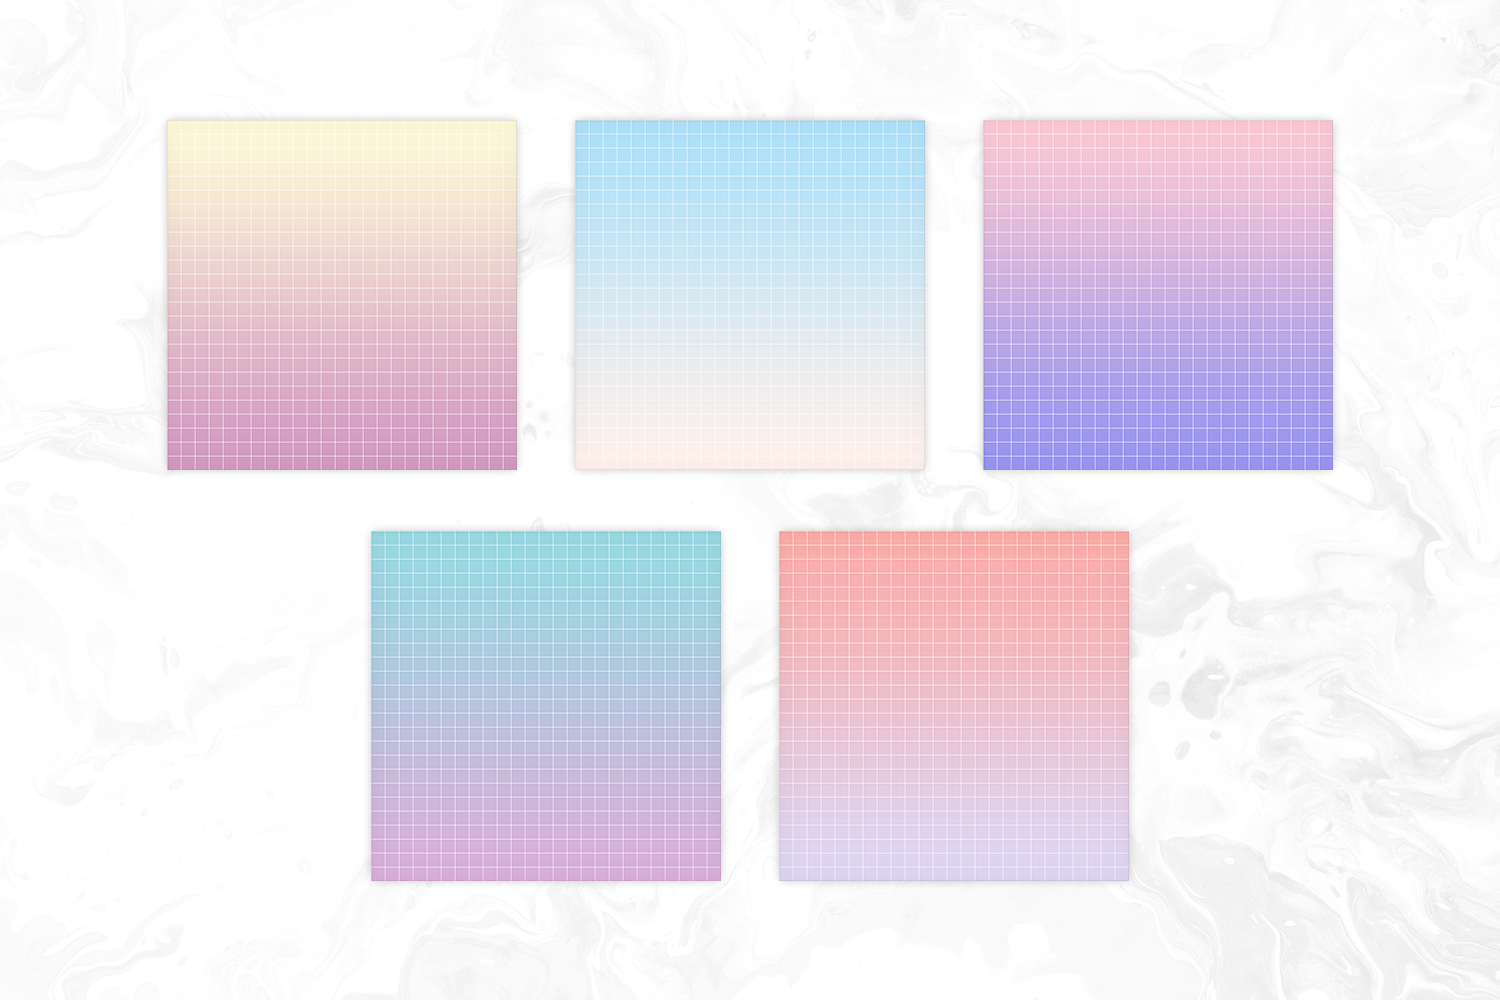 Vapowave Inspired Pastel Gradient Big Grid Backgrounds example image 3